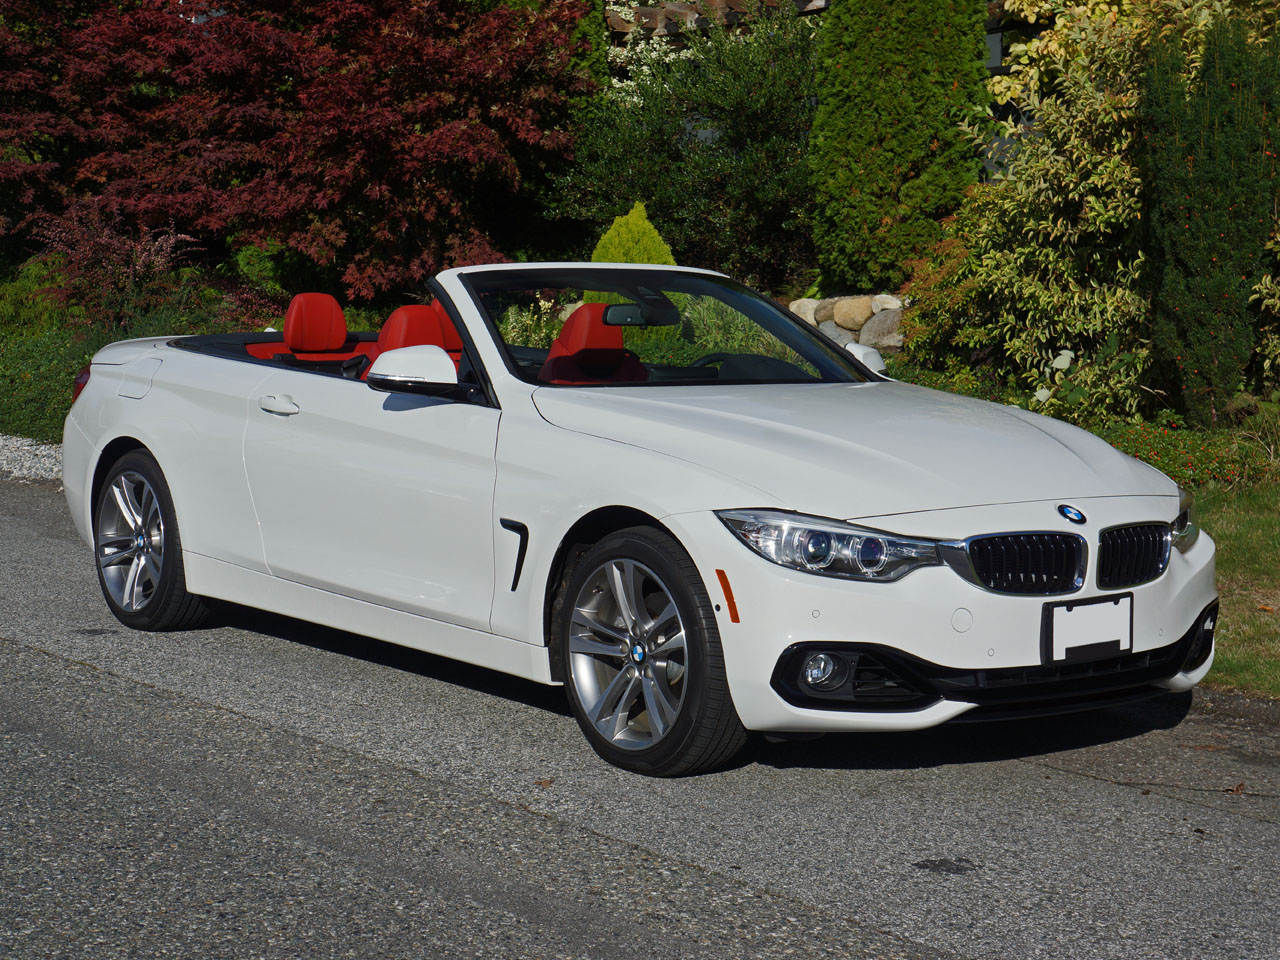 2017 Bmw 428i Xdrive Cabriolet Road Test Review